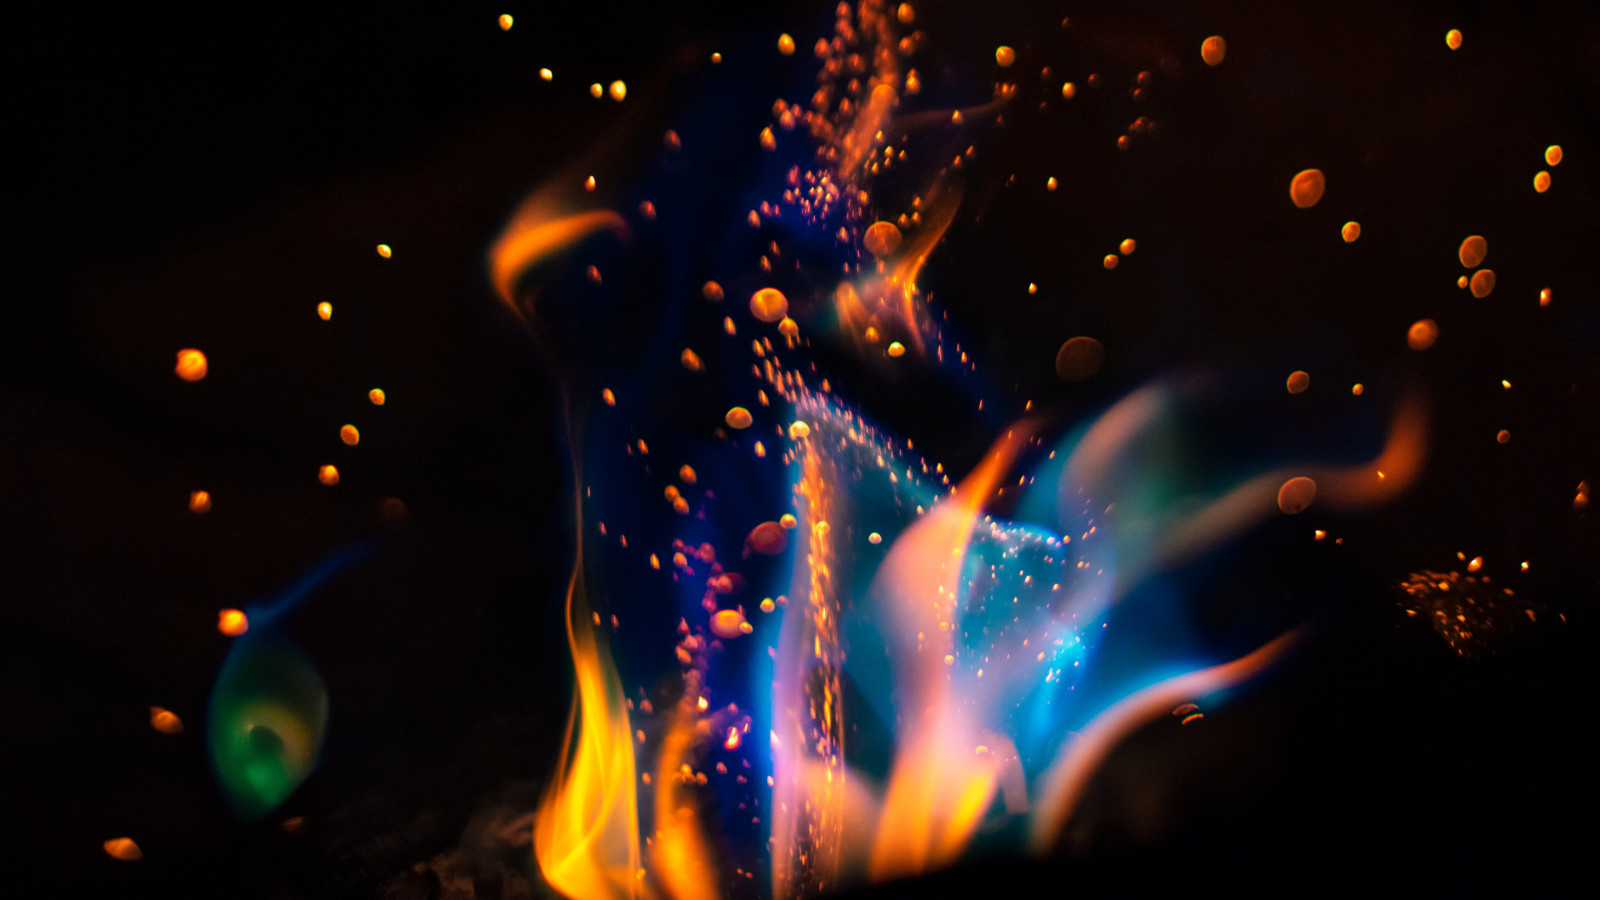 Hot flames in darkness wallpaper 1600x900